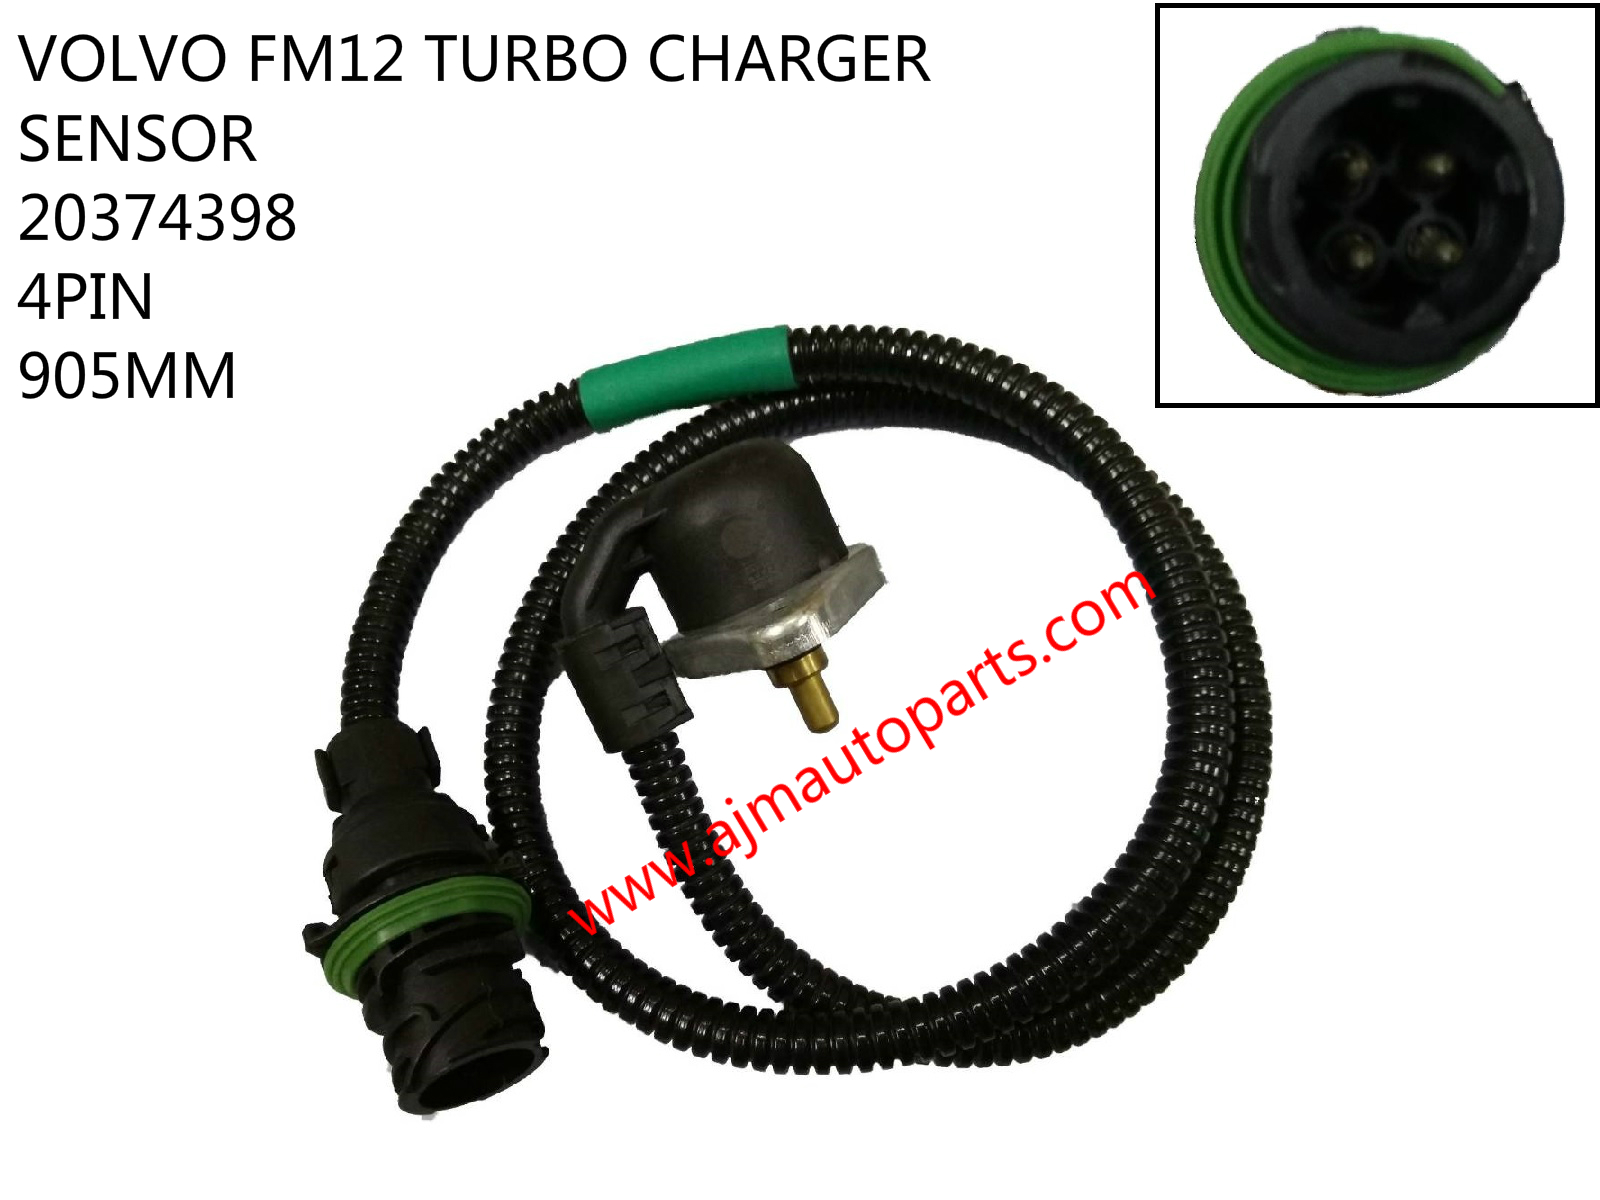 VOLVO FM12 TURBO CHARGER SENSOR-20374398